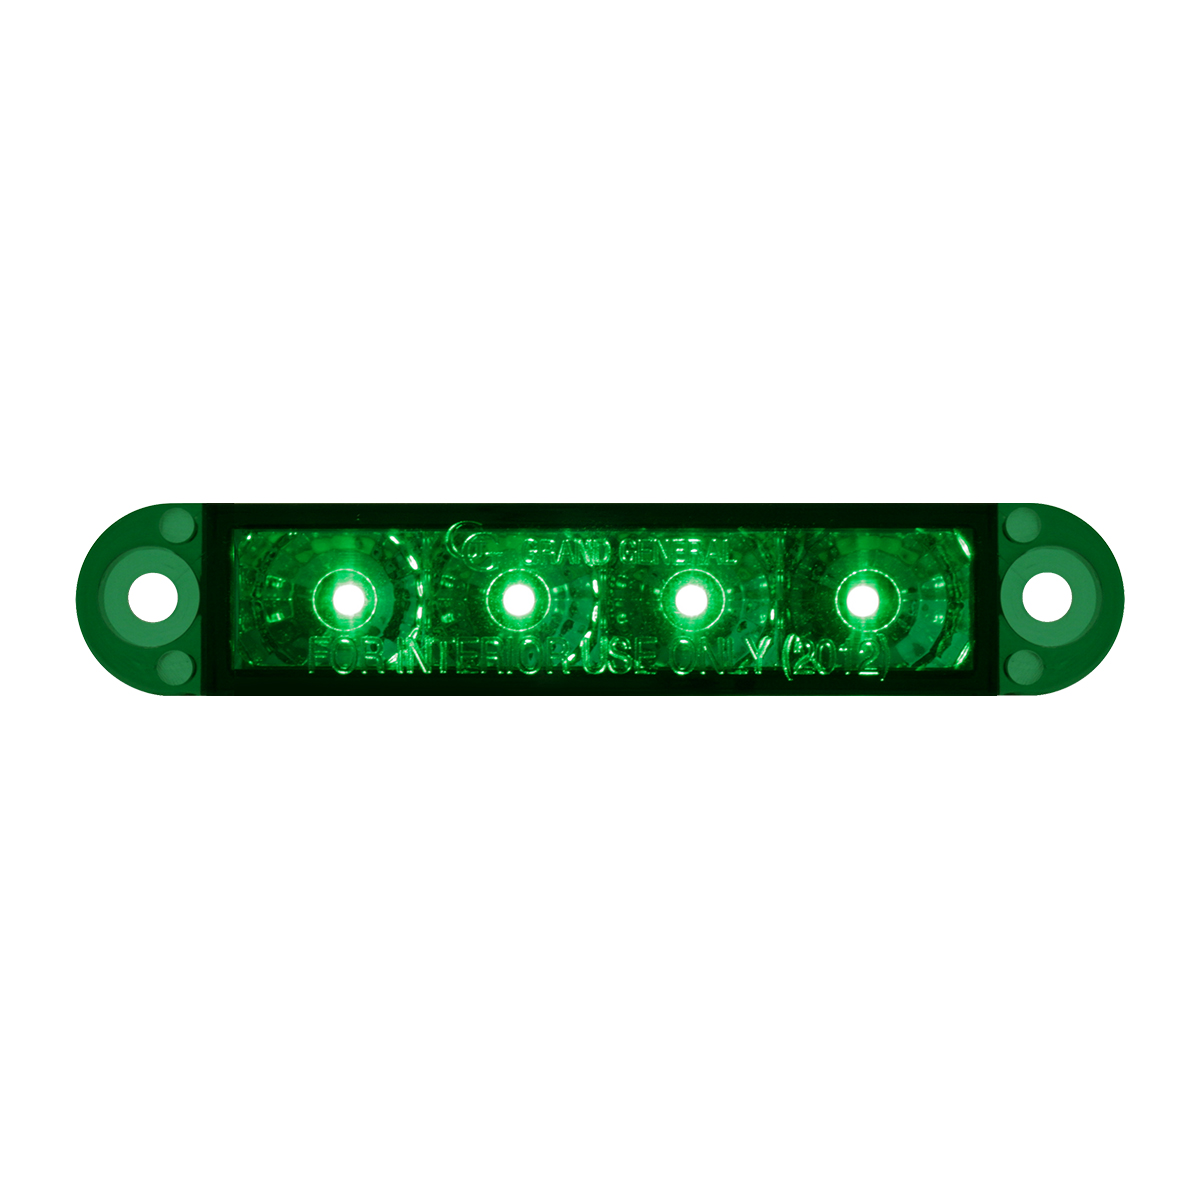 "76076 3.5"" Dual Function LED Light in Green/Green"